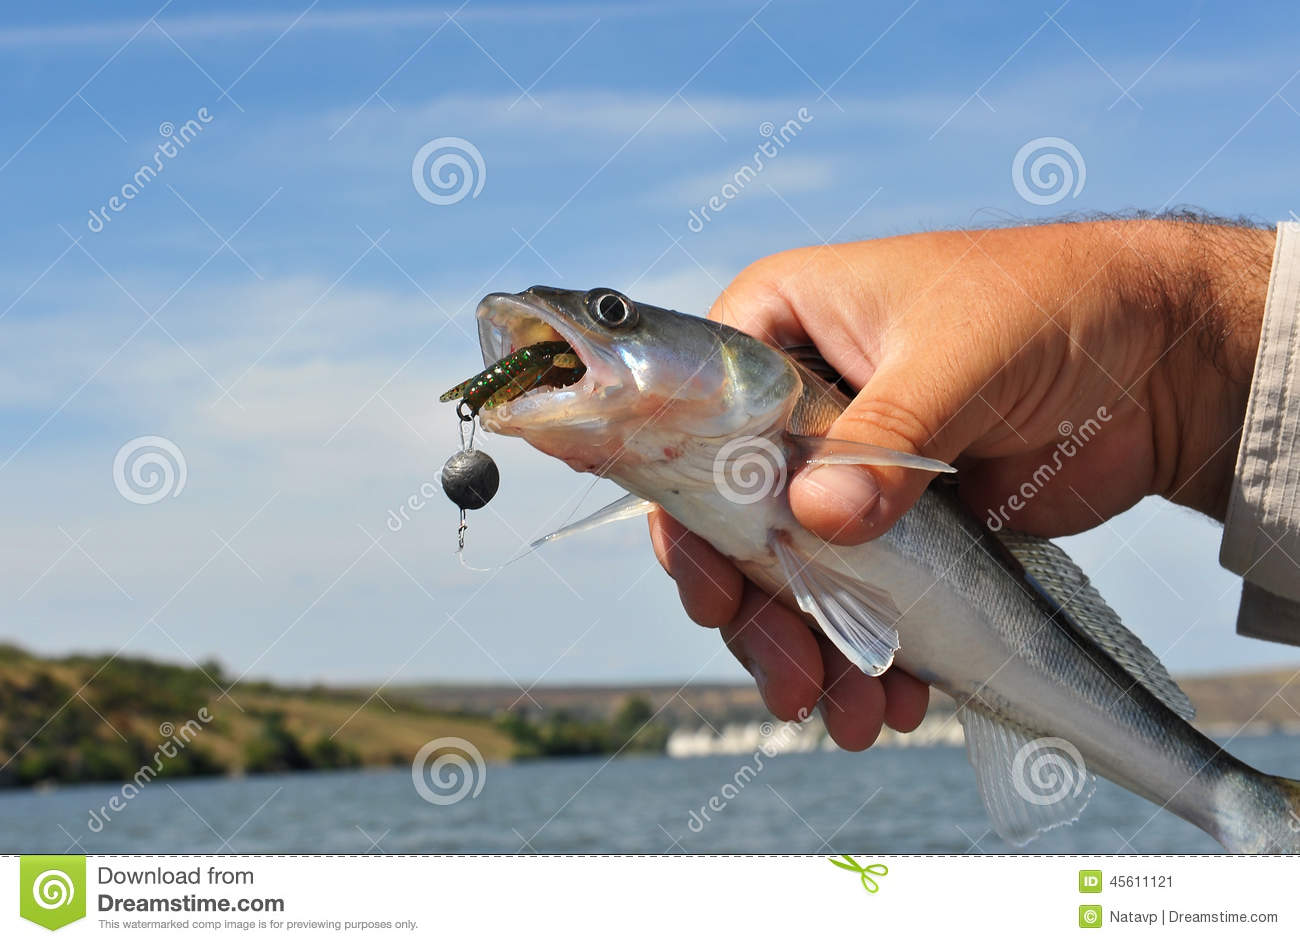 fishing bait in the fish's mouth stock photo - image: 45611121, Fishing Bait